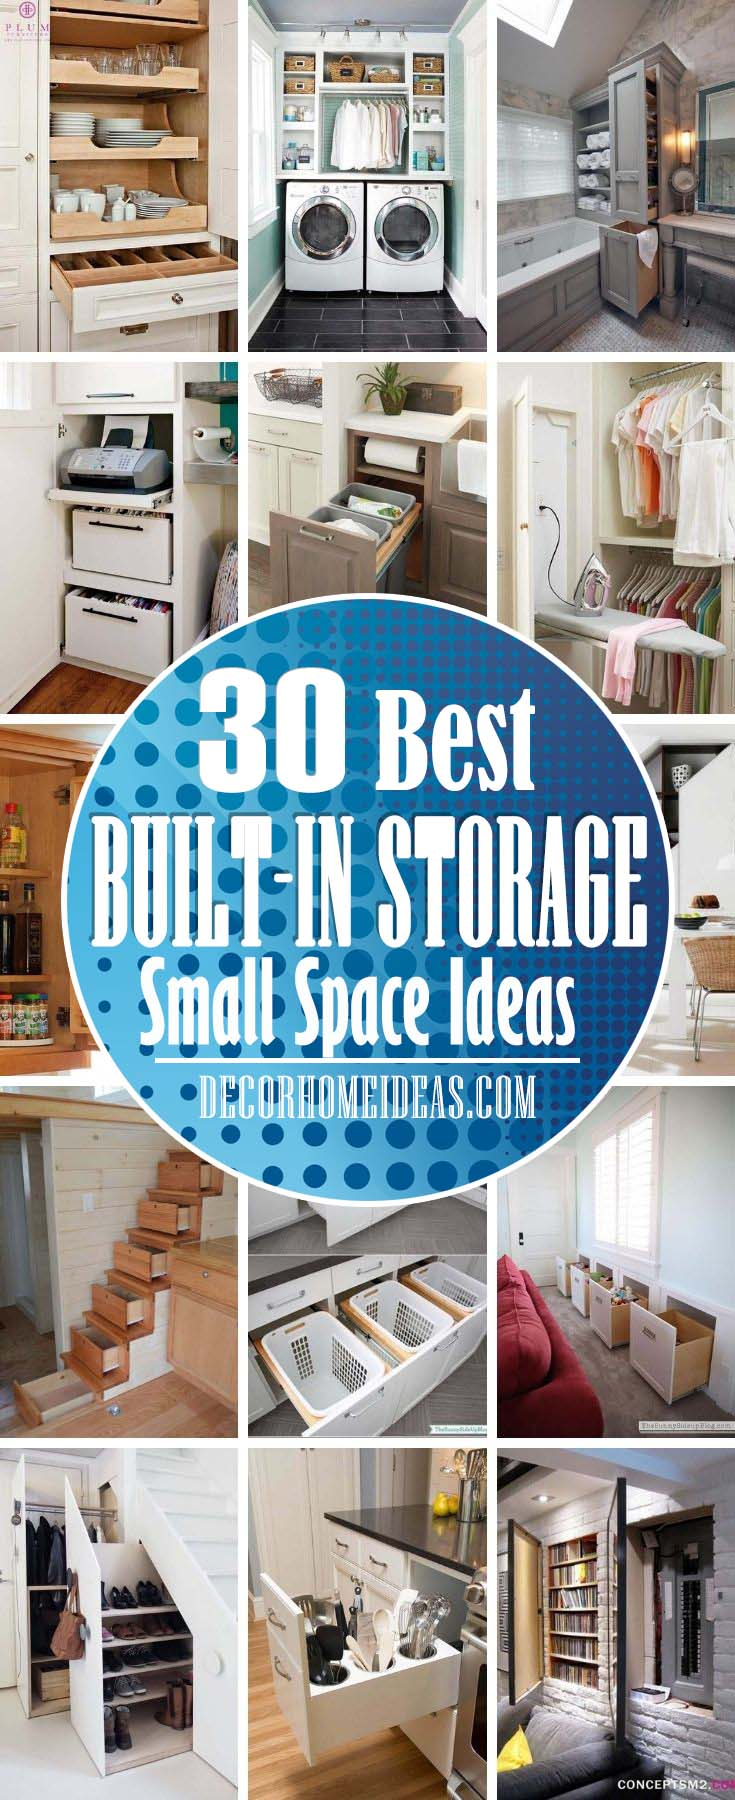 Best Built In Storage Ideas. Built-in storage is the perfect way to hide clutter, offering a much sleeker and tidier solution than free-standing wardrobes or shelving units. From built-in bookshelves in the living room to wardrobes, pantries, and bathroom cupboards.